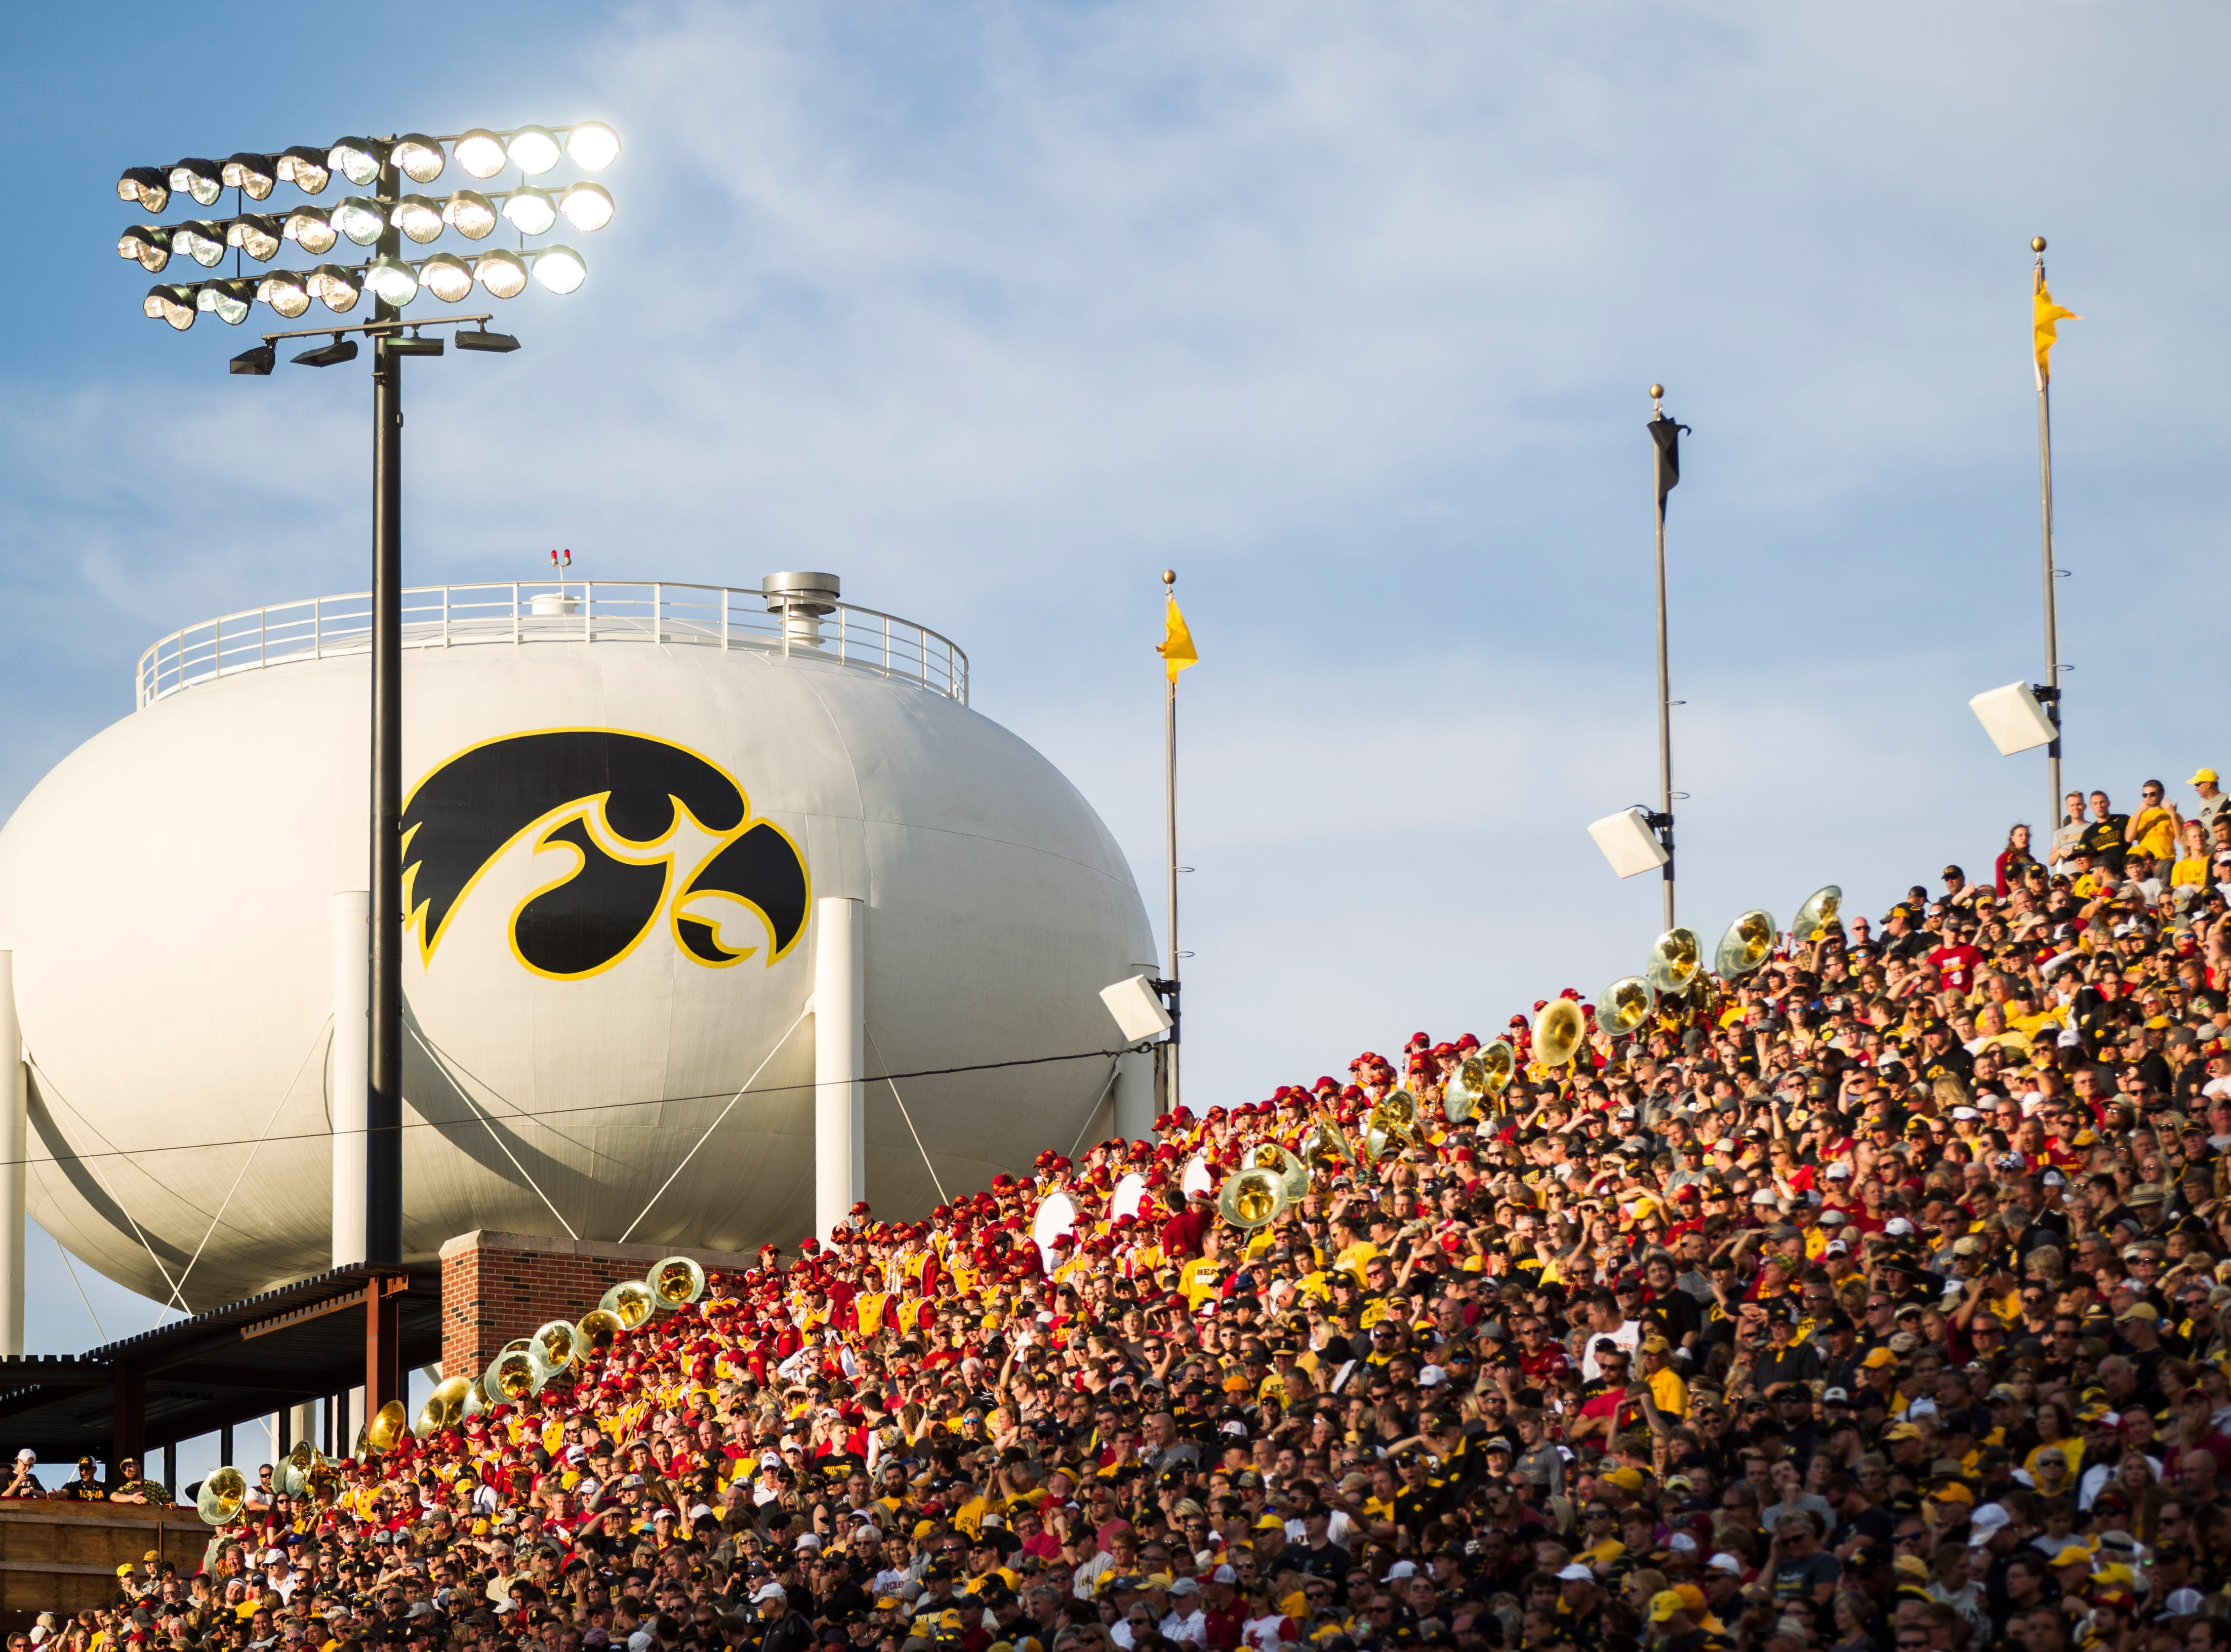 The sun sets past the recently painted Tigerhawk water tower during the Cy-Hawk NCAA football game on Saturday, Sept. 8, 2018, at Kinnick Stadium in Iowa City.